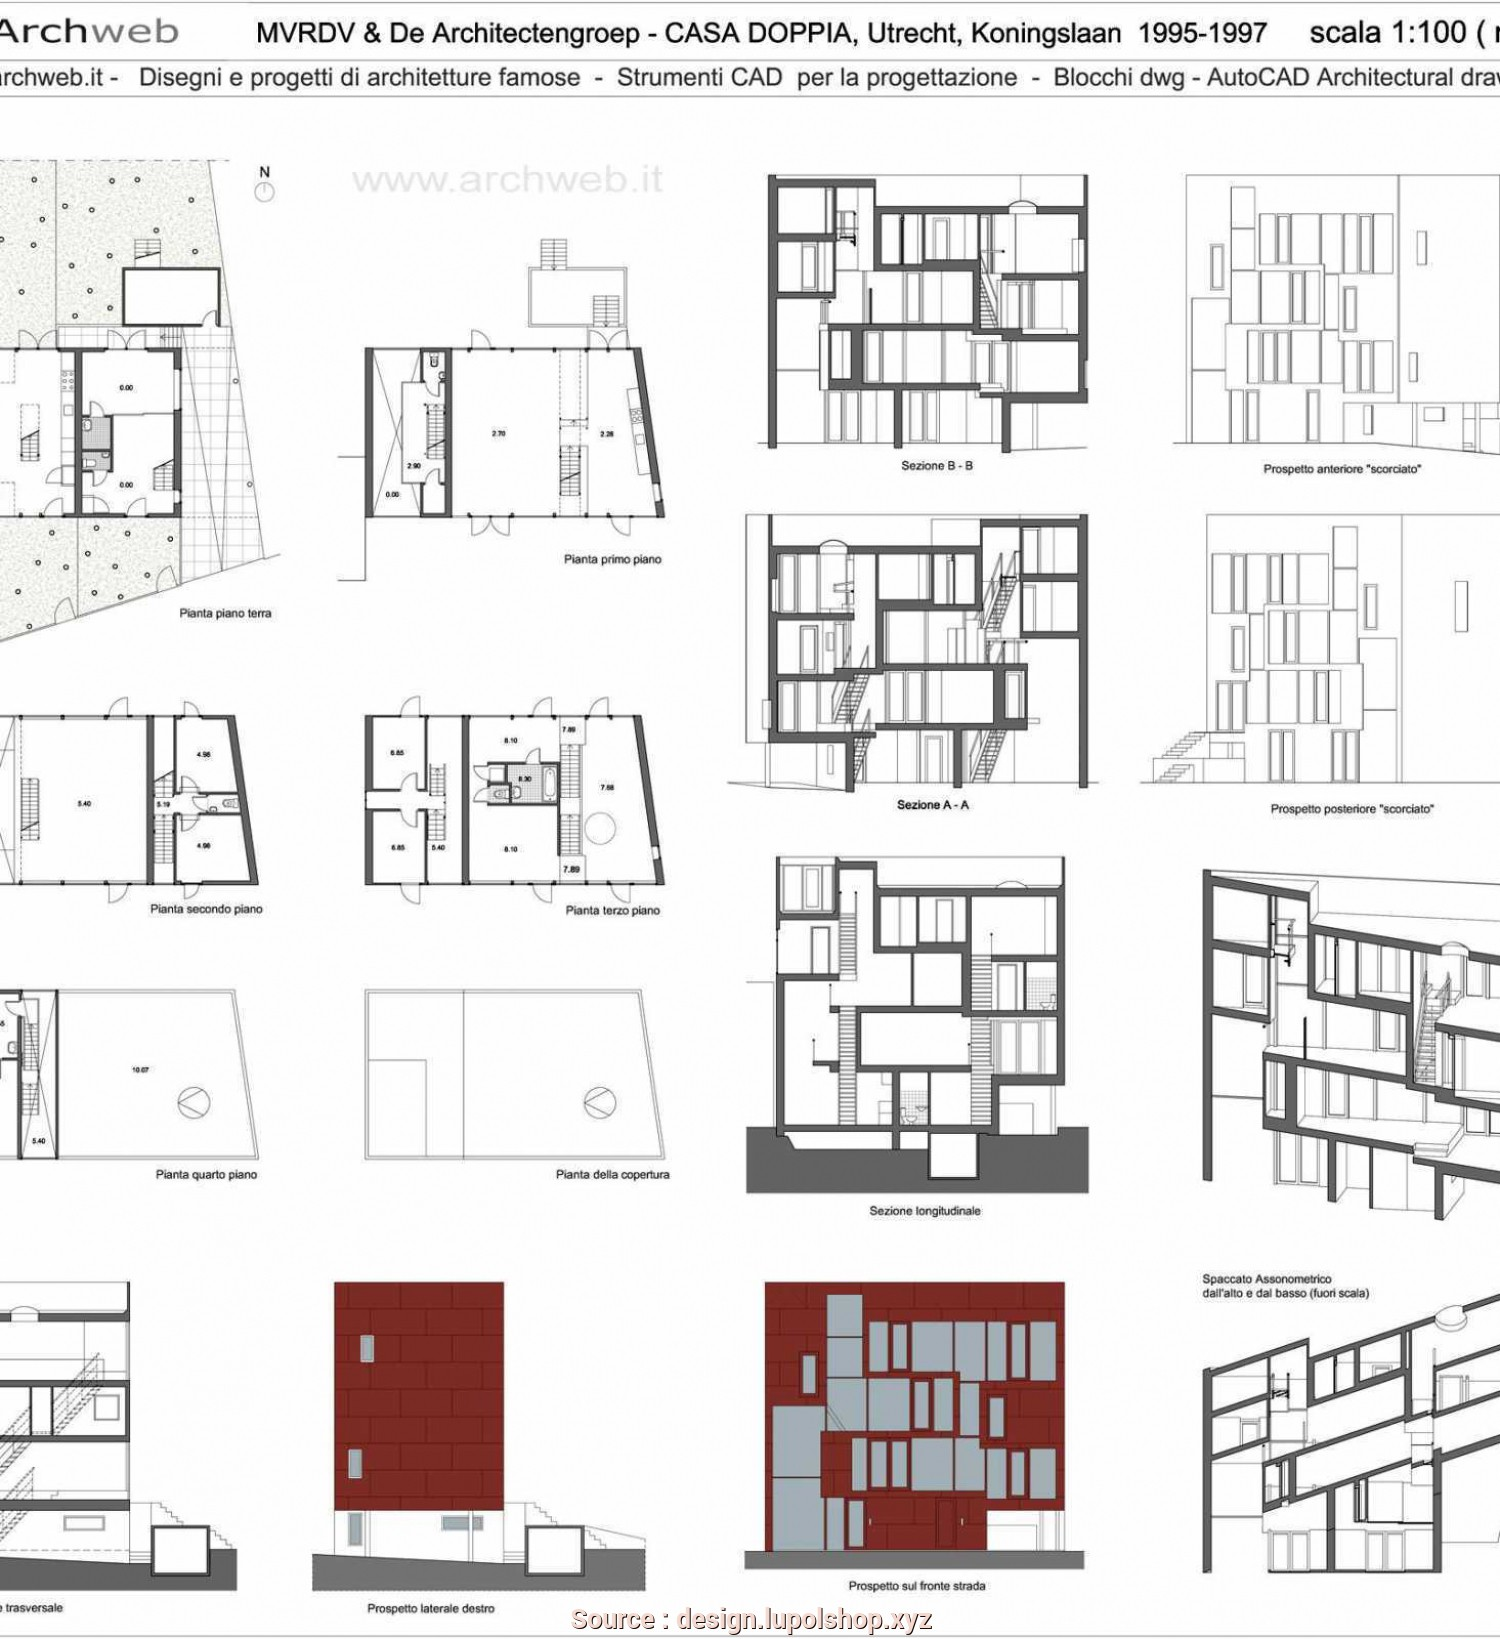 Doors Archweb Dwg A Downloadable Library Of Free Dwg Drawings By Flan Studio Flan Studio Sc 1 St Archdaily